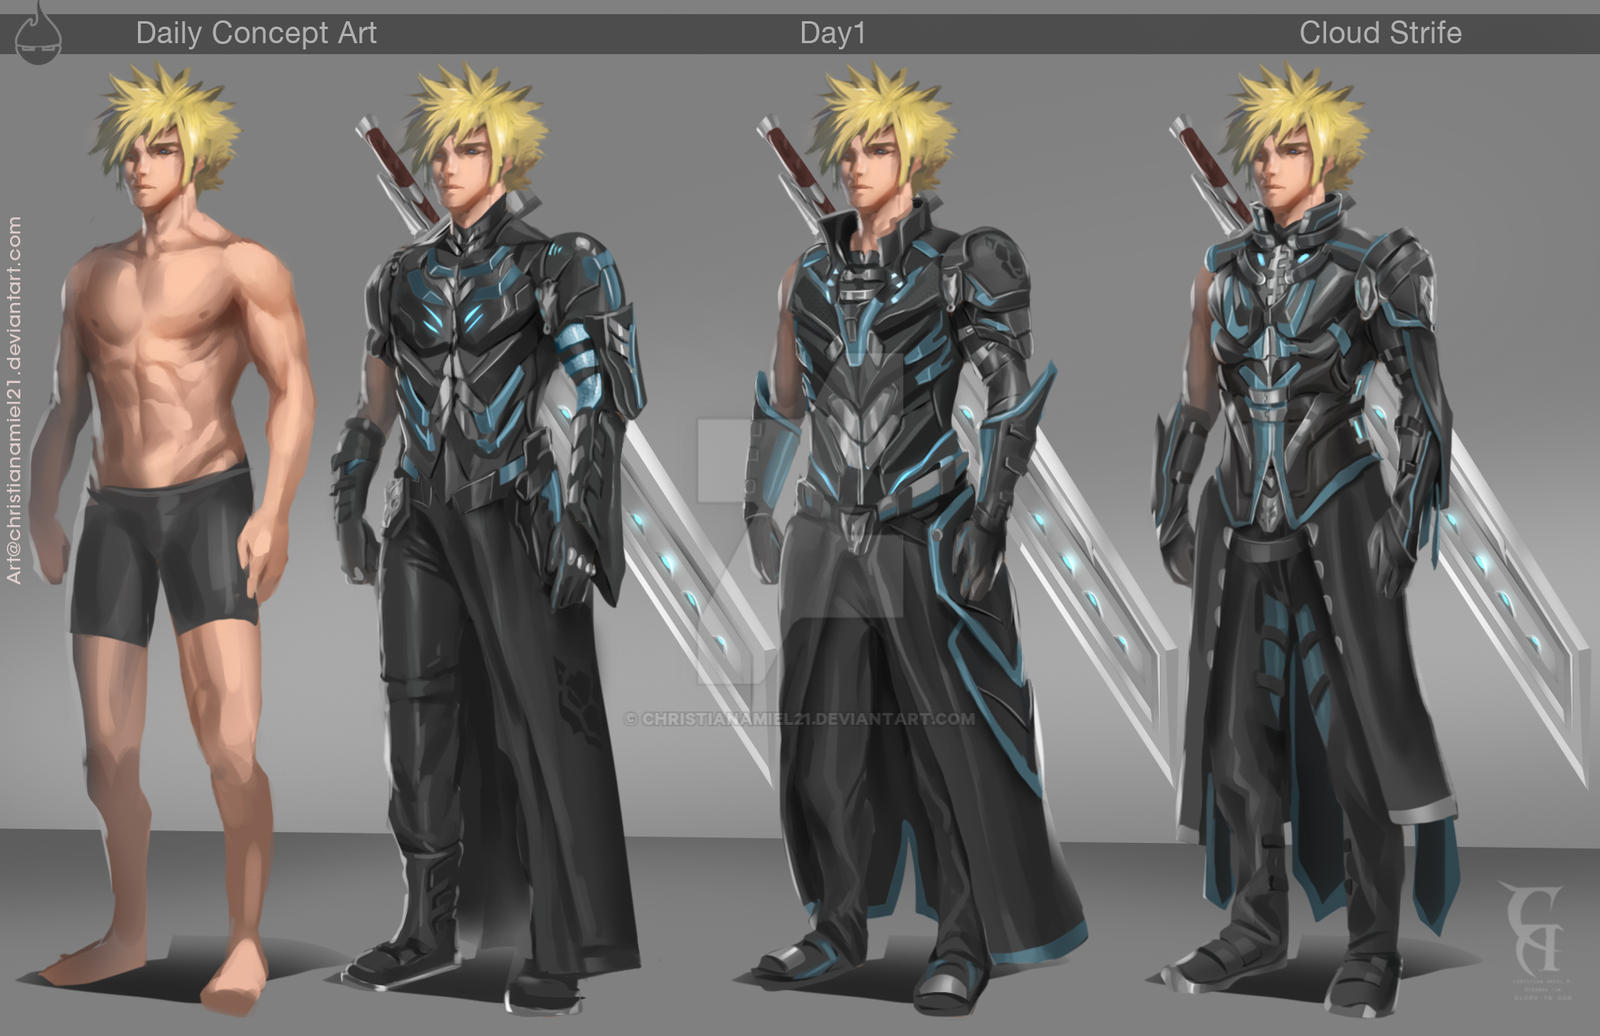 Concept Art Day 01 Cloud Strife By Christianamiel21 On